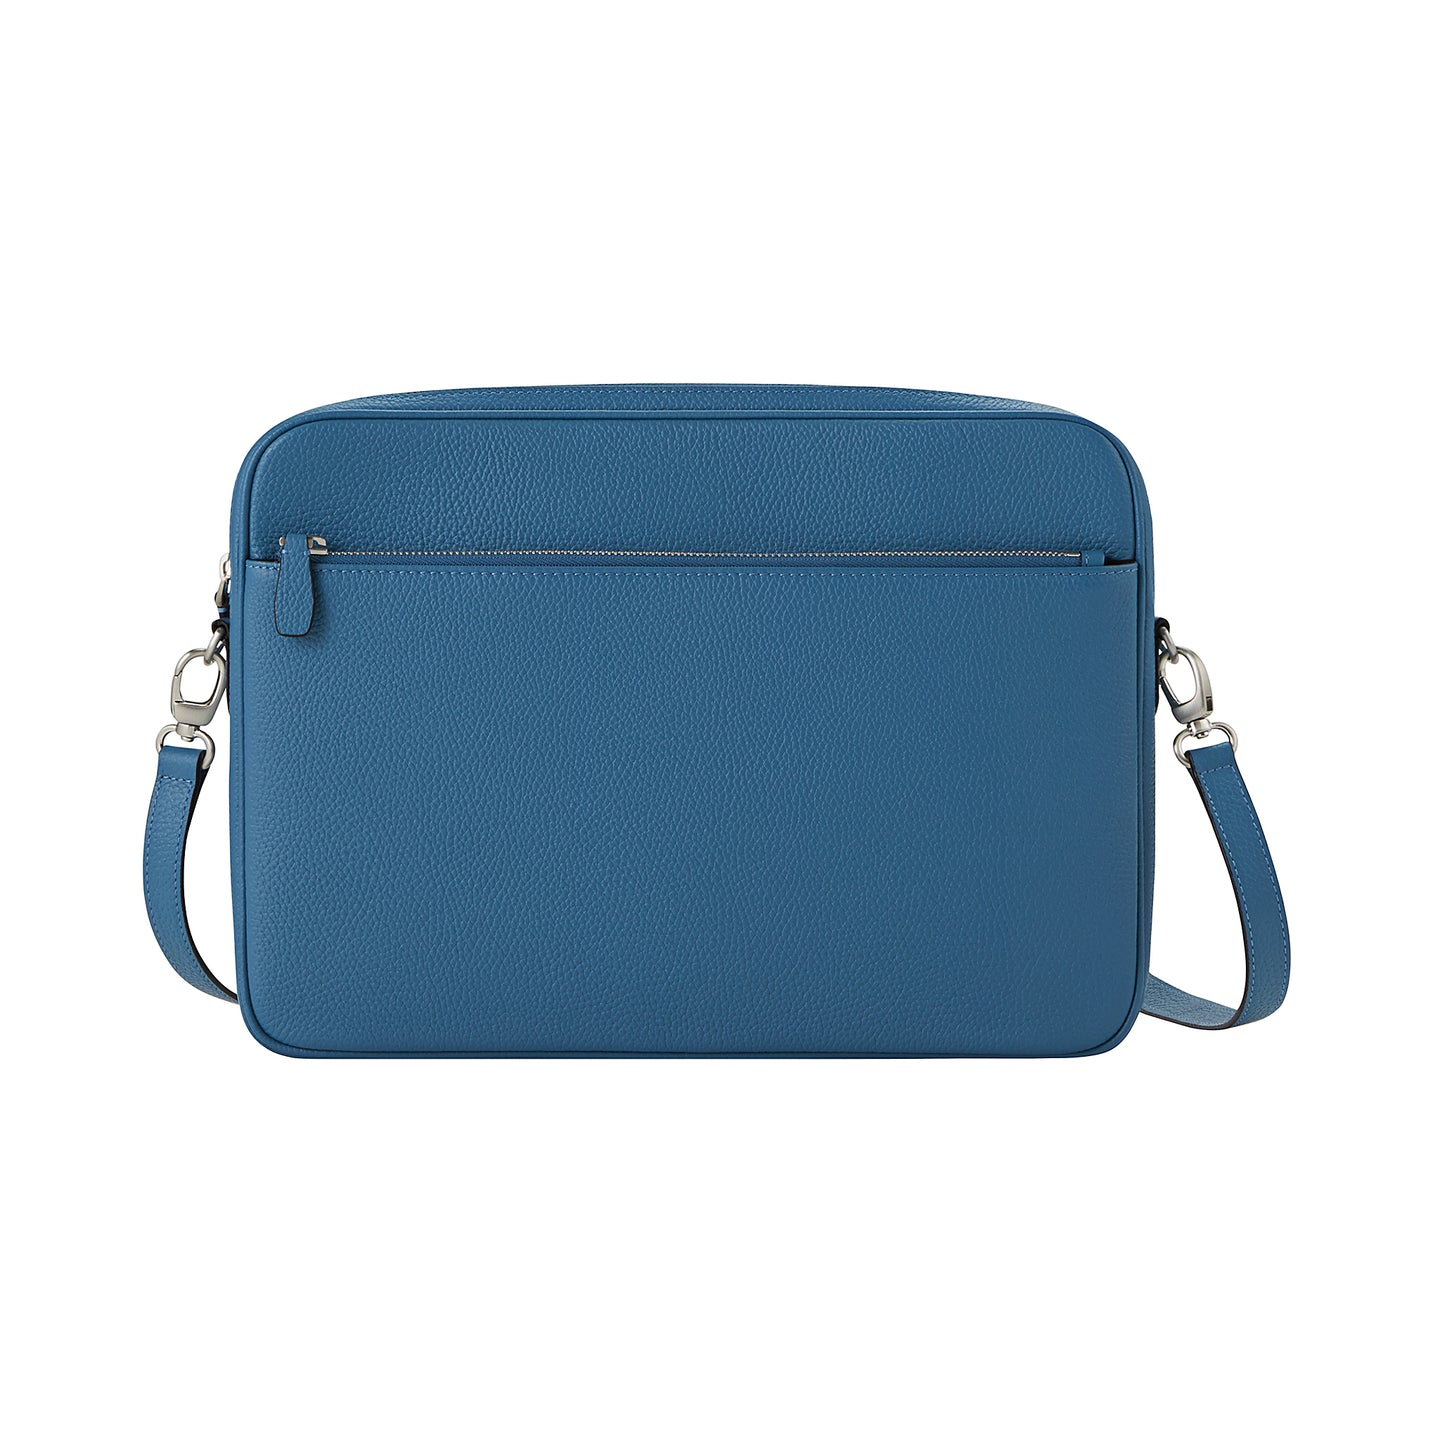 Daniel 32 Cross Body Bag Blue